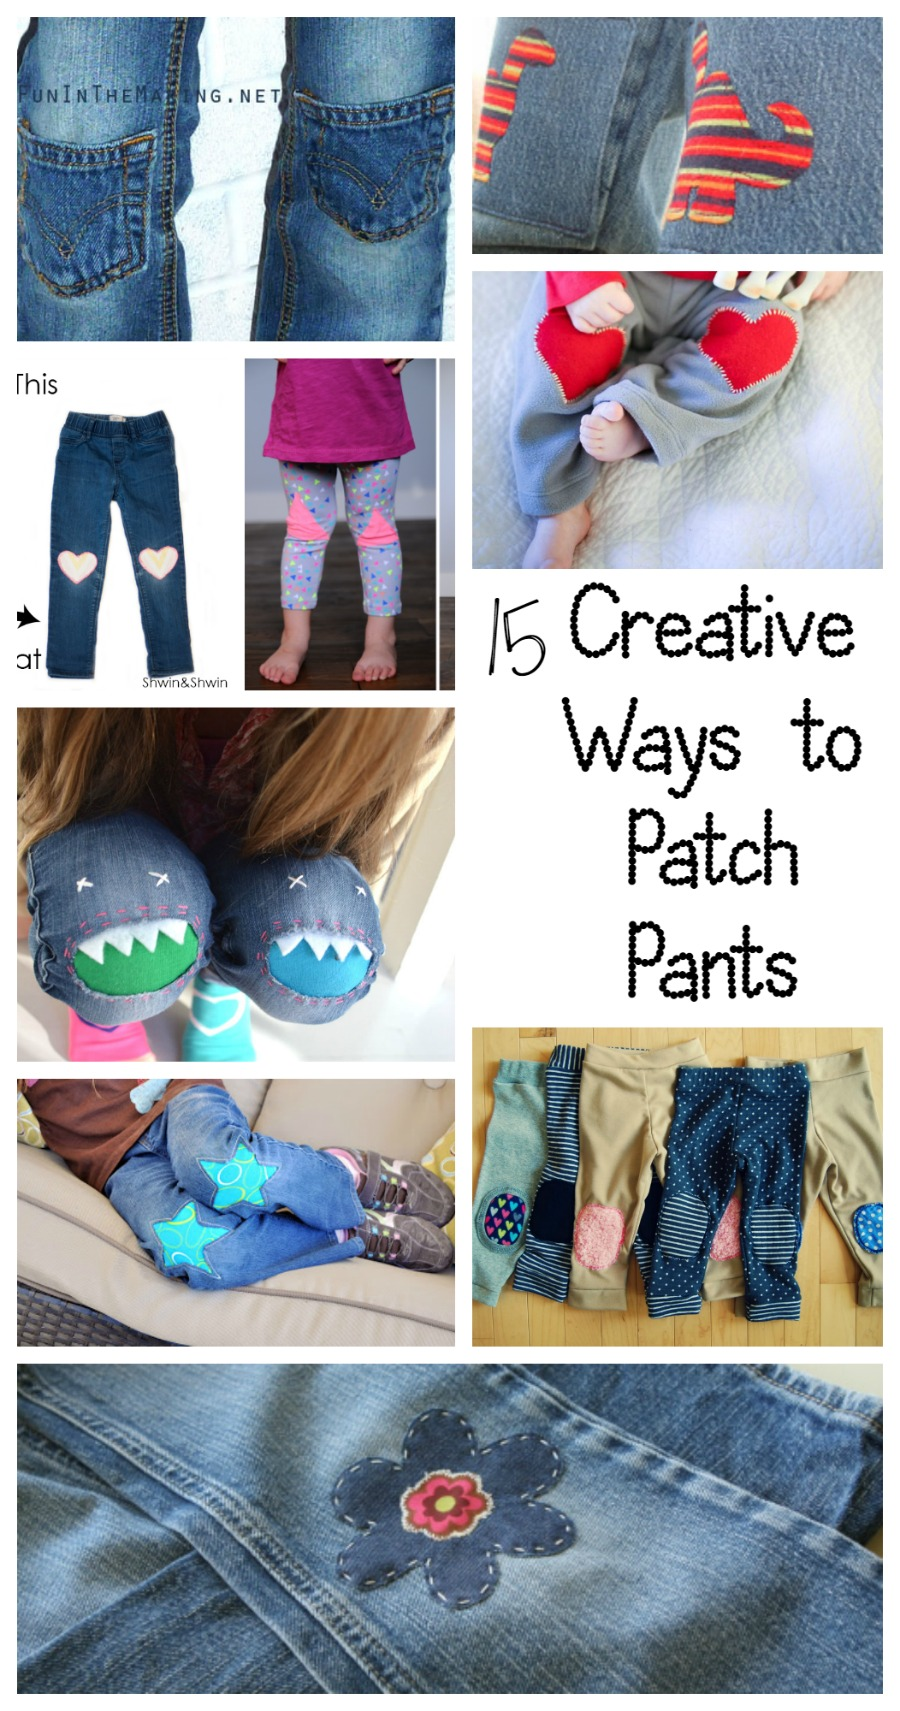 Lots of fun ways to upcylce hole-y pants. So many awesome patches.